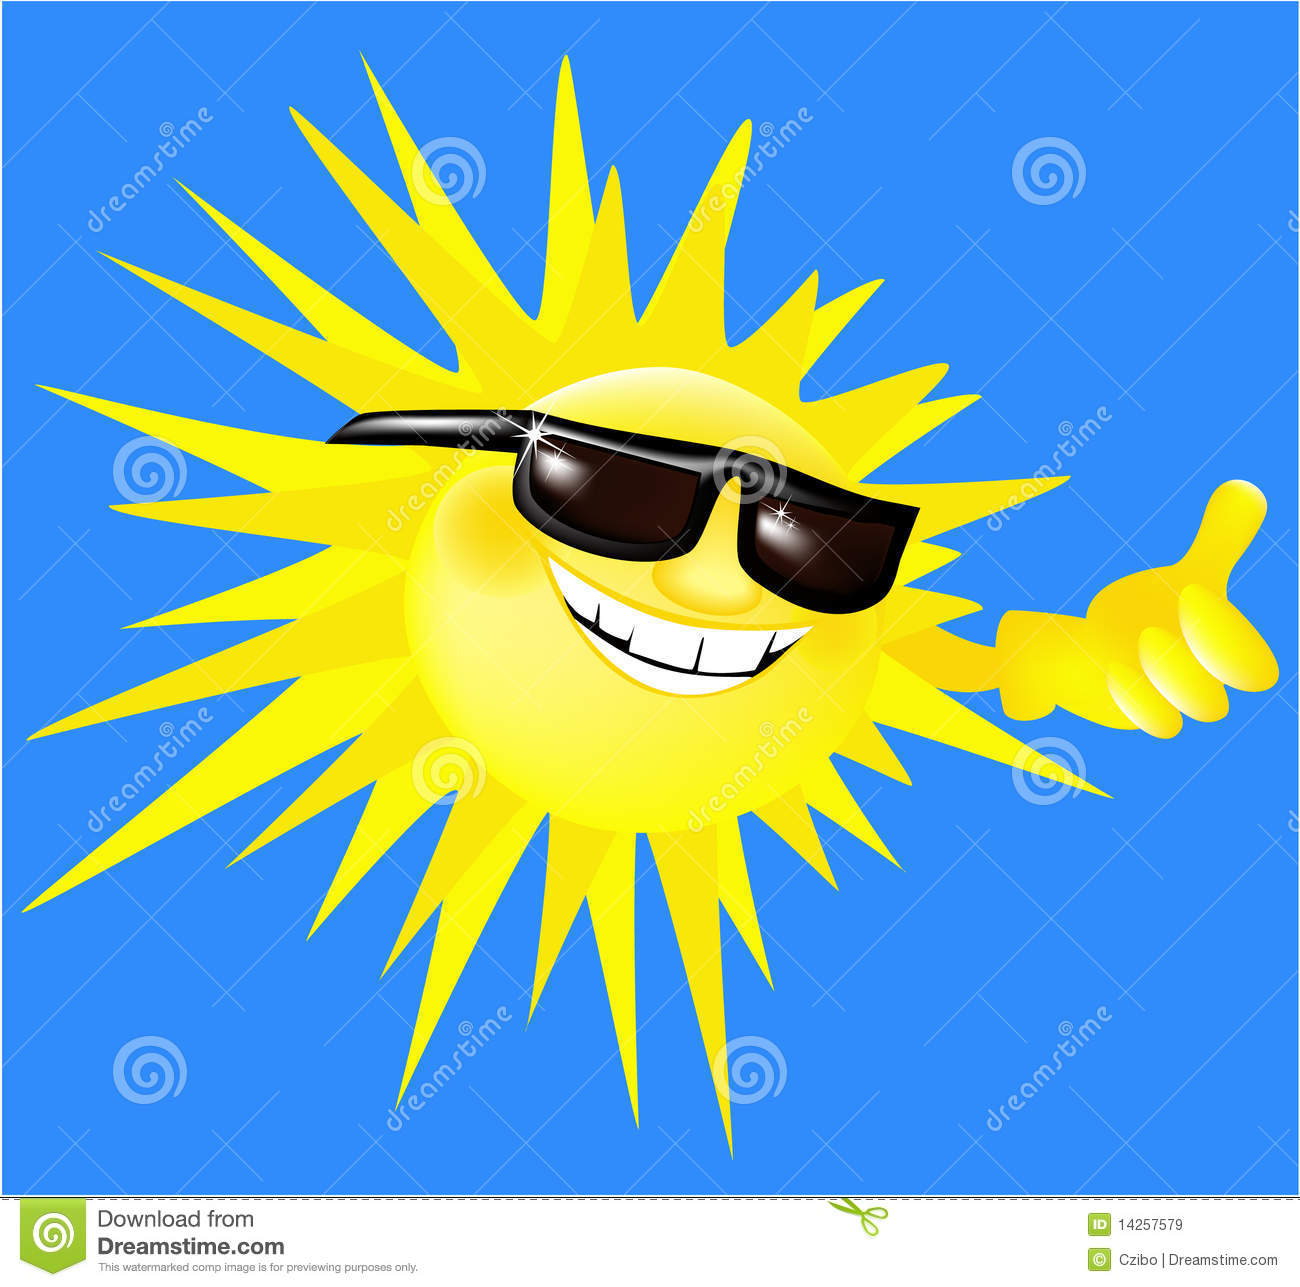 Holiday cartoon sun in sunglasses - vector illustration.